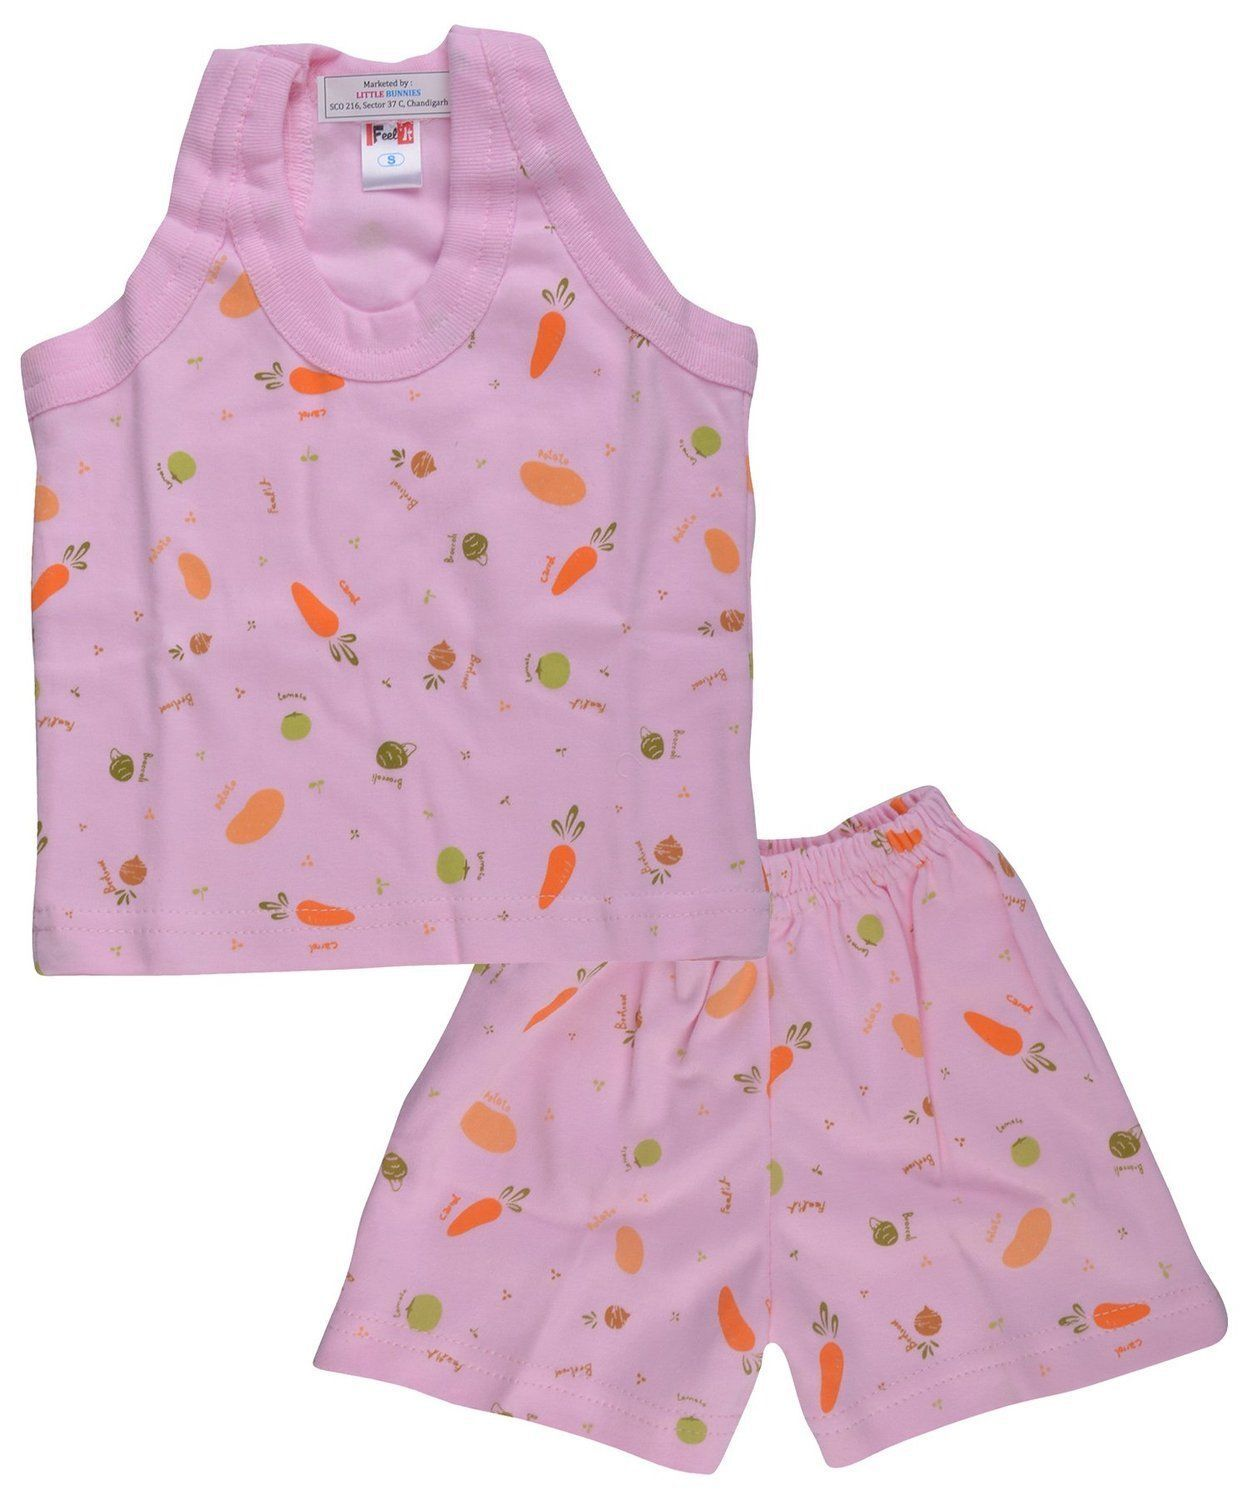 Baby Girl Boy Cotton Summer Set Clothes